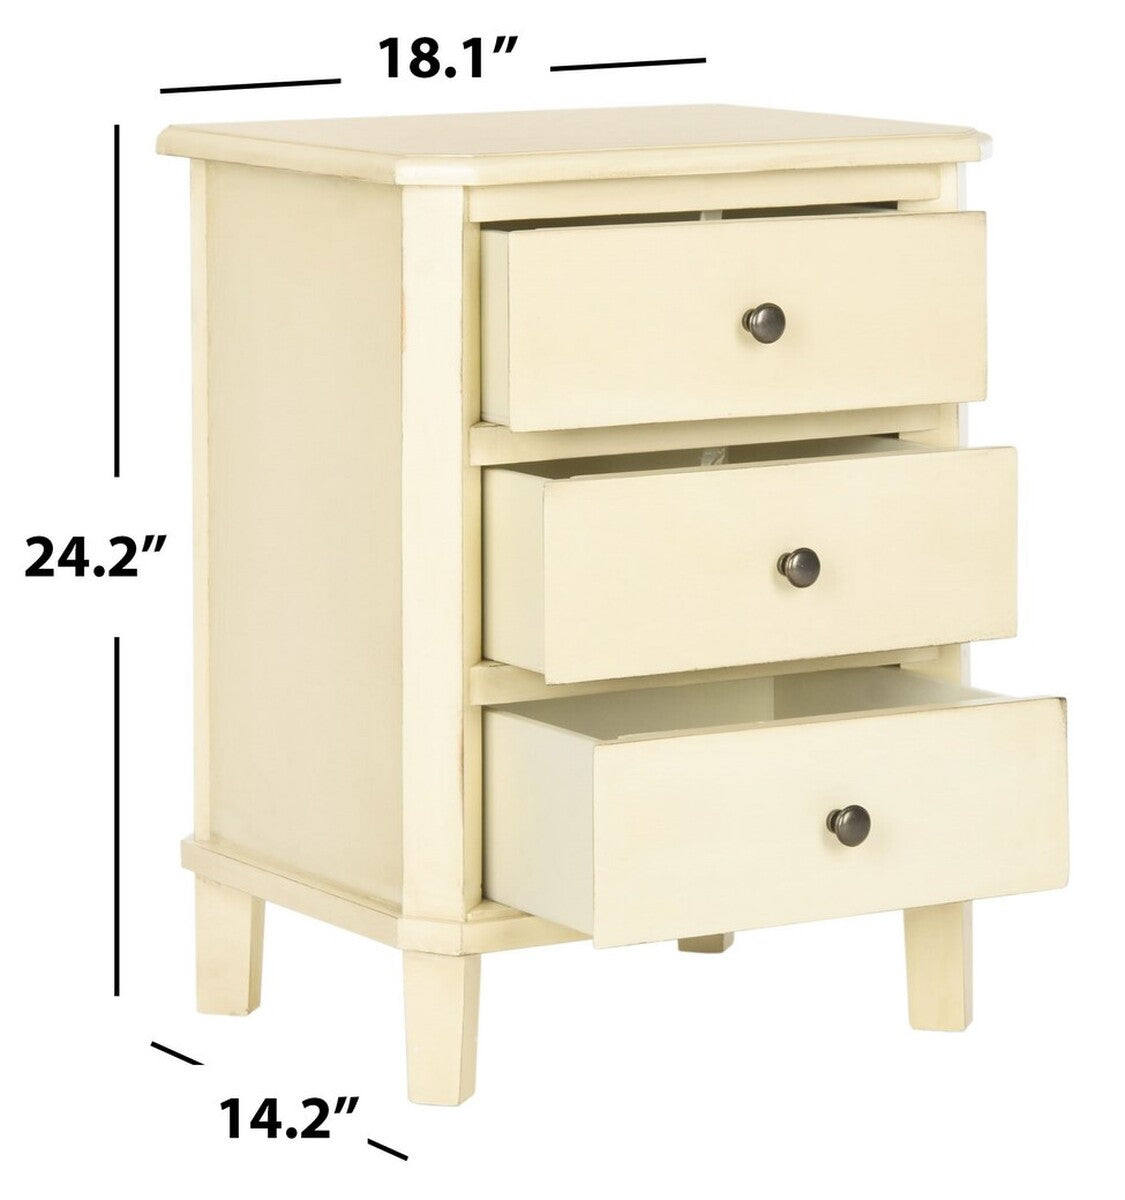 Joe End Table With Storage Drawers.